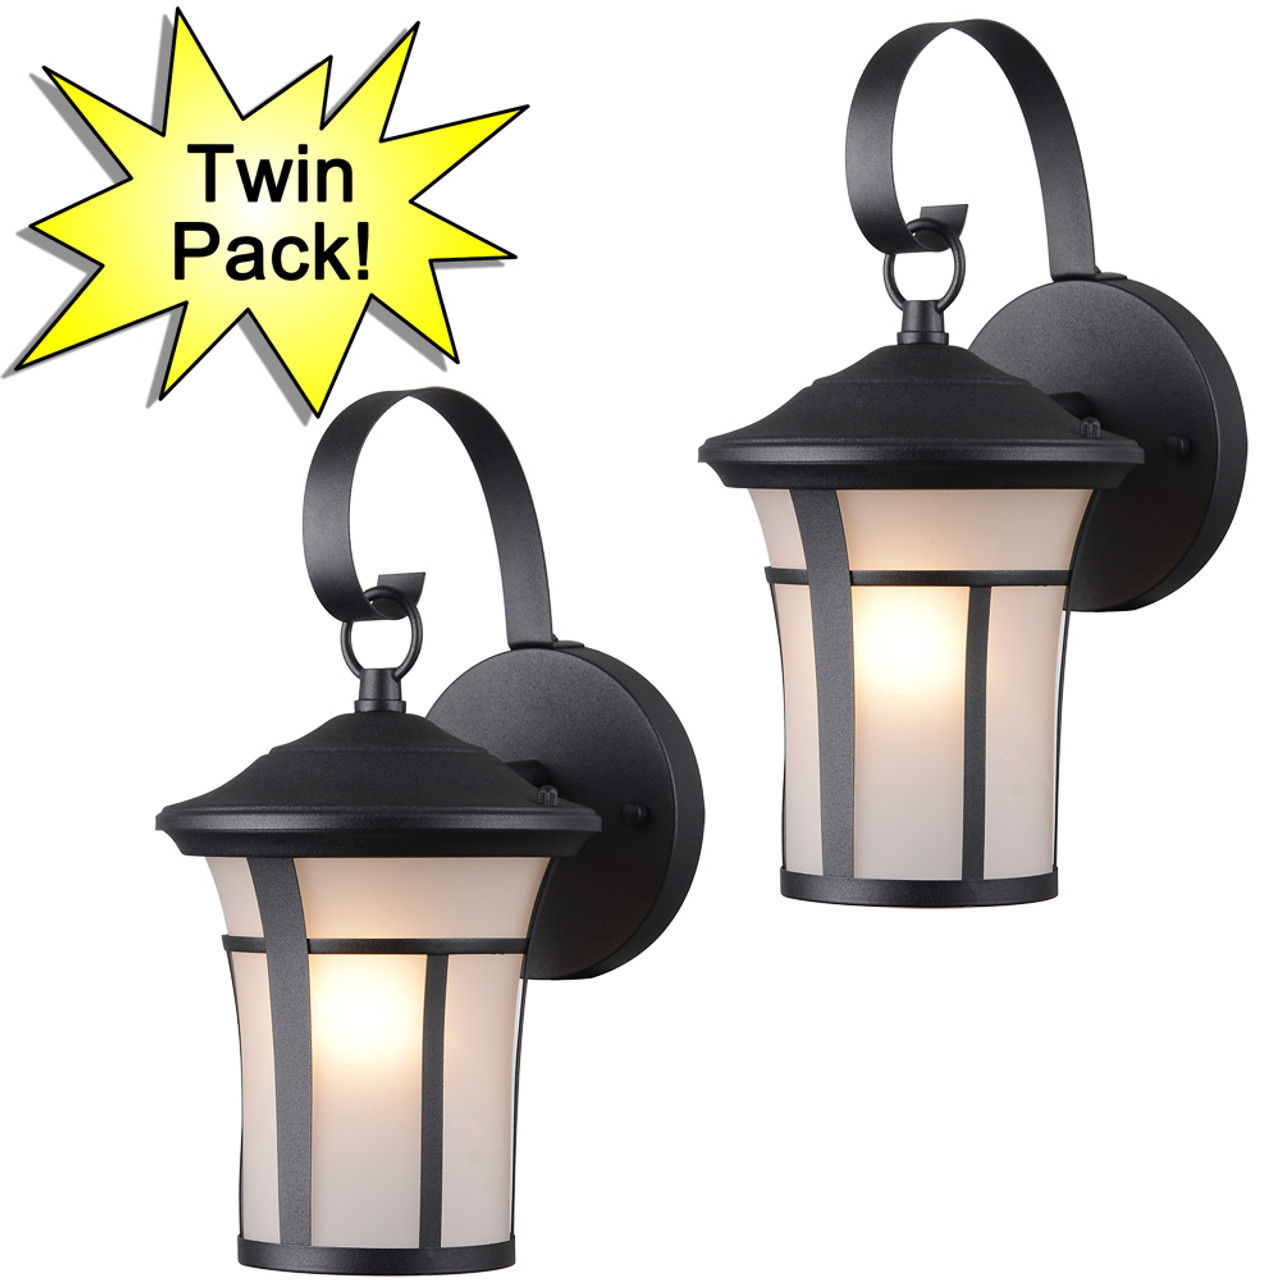 Black outdoor patio porch exterior light fixtures twin pack 22 9692